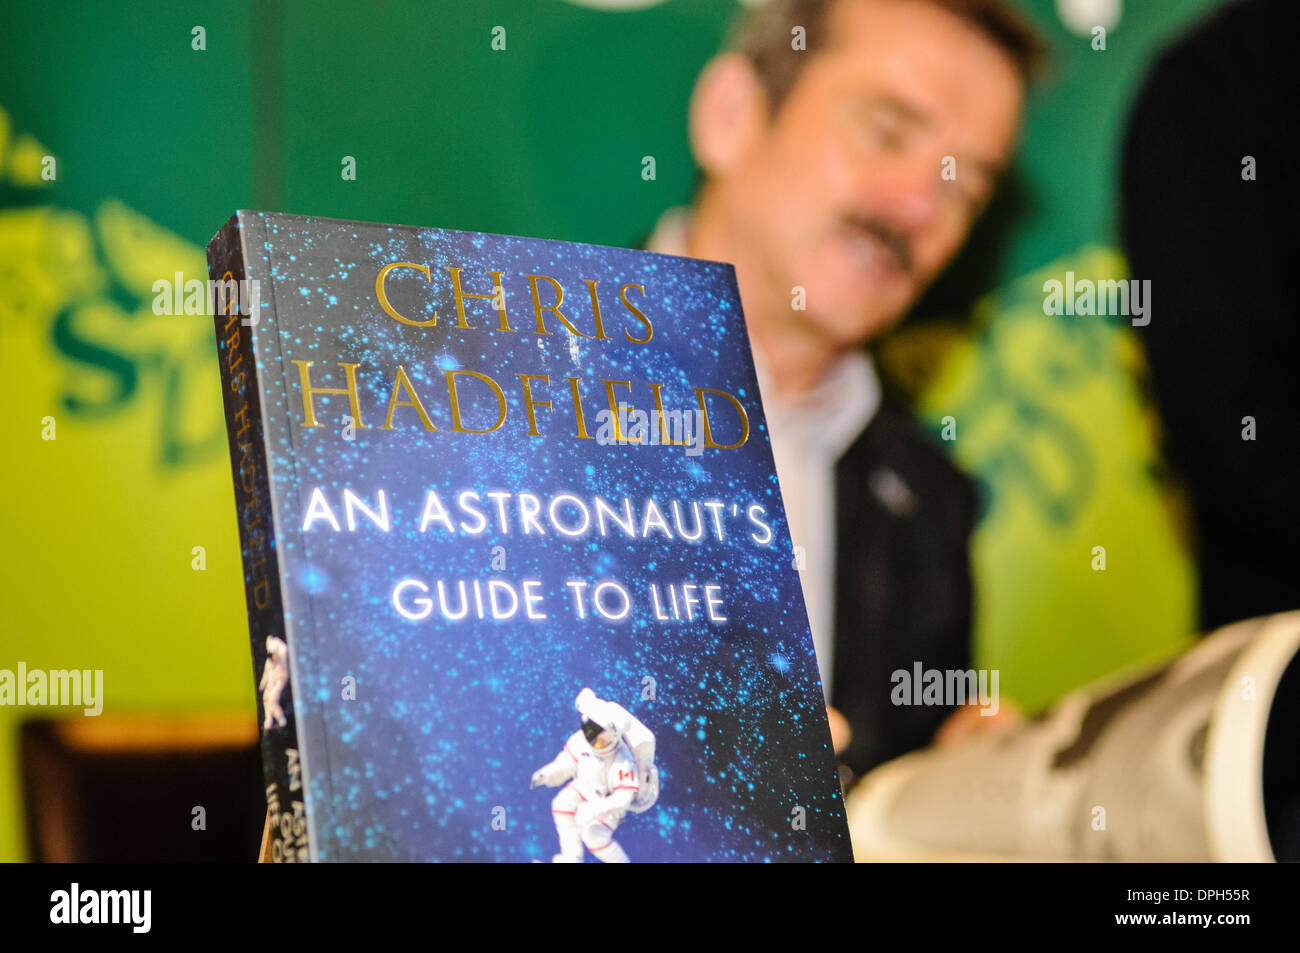 Belfast, Northern Ireland. 14 Jan 2014 -  Commander Chris Hadfield signs copies of his  book 'An Astronaut's Guide to Life on Earth' Credit:  Stephen Barnes/Alamy Live News - Stock Image